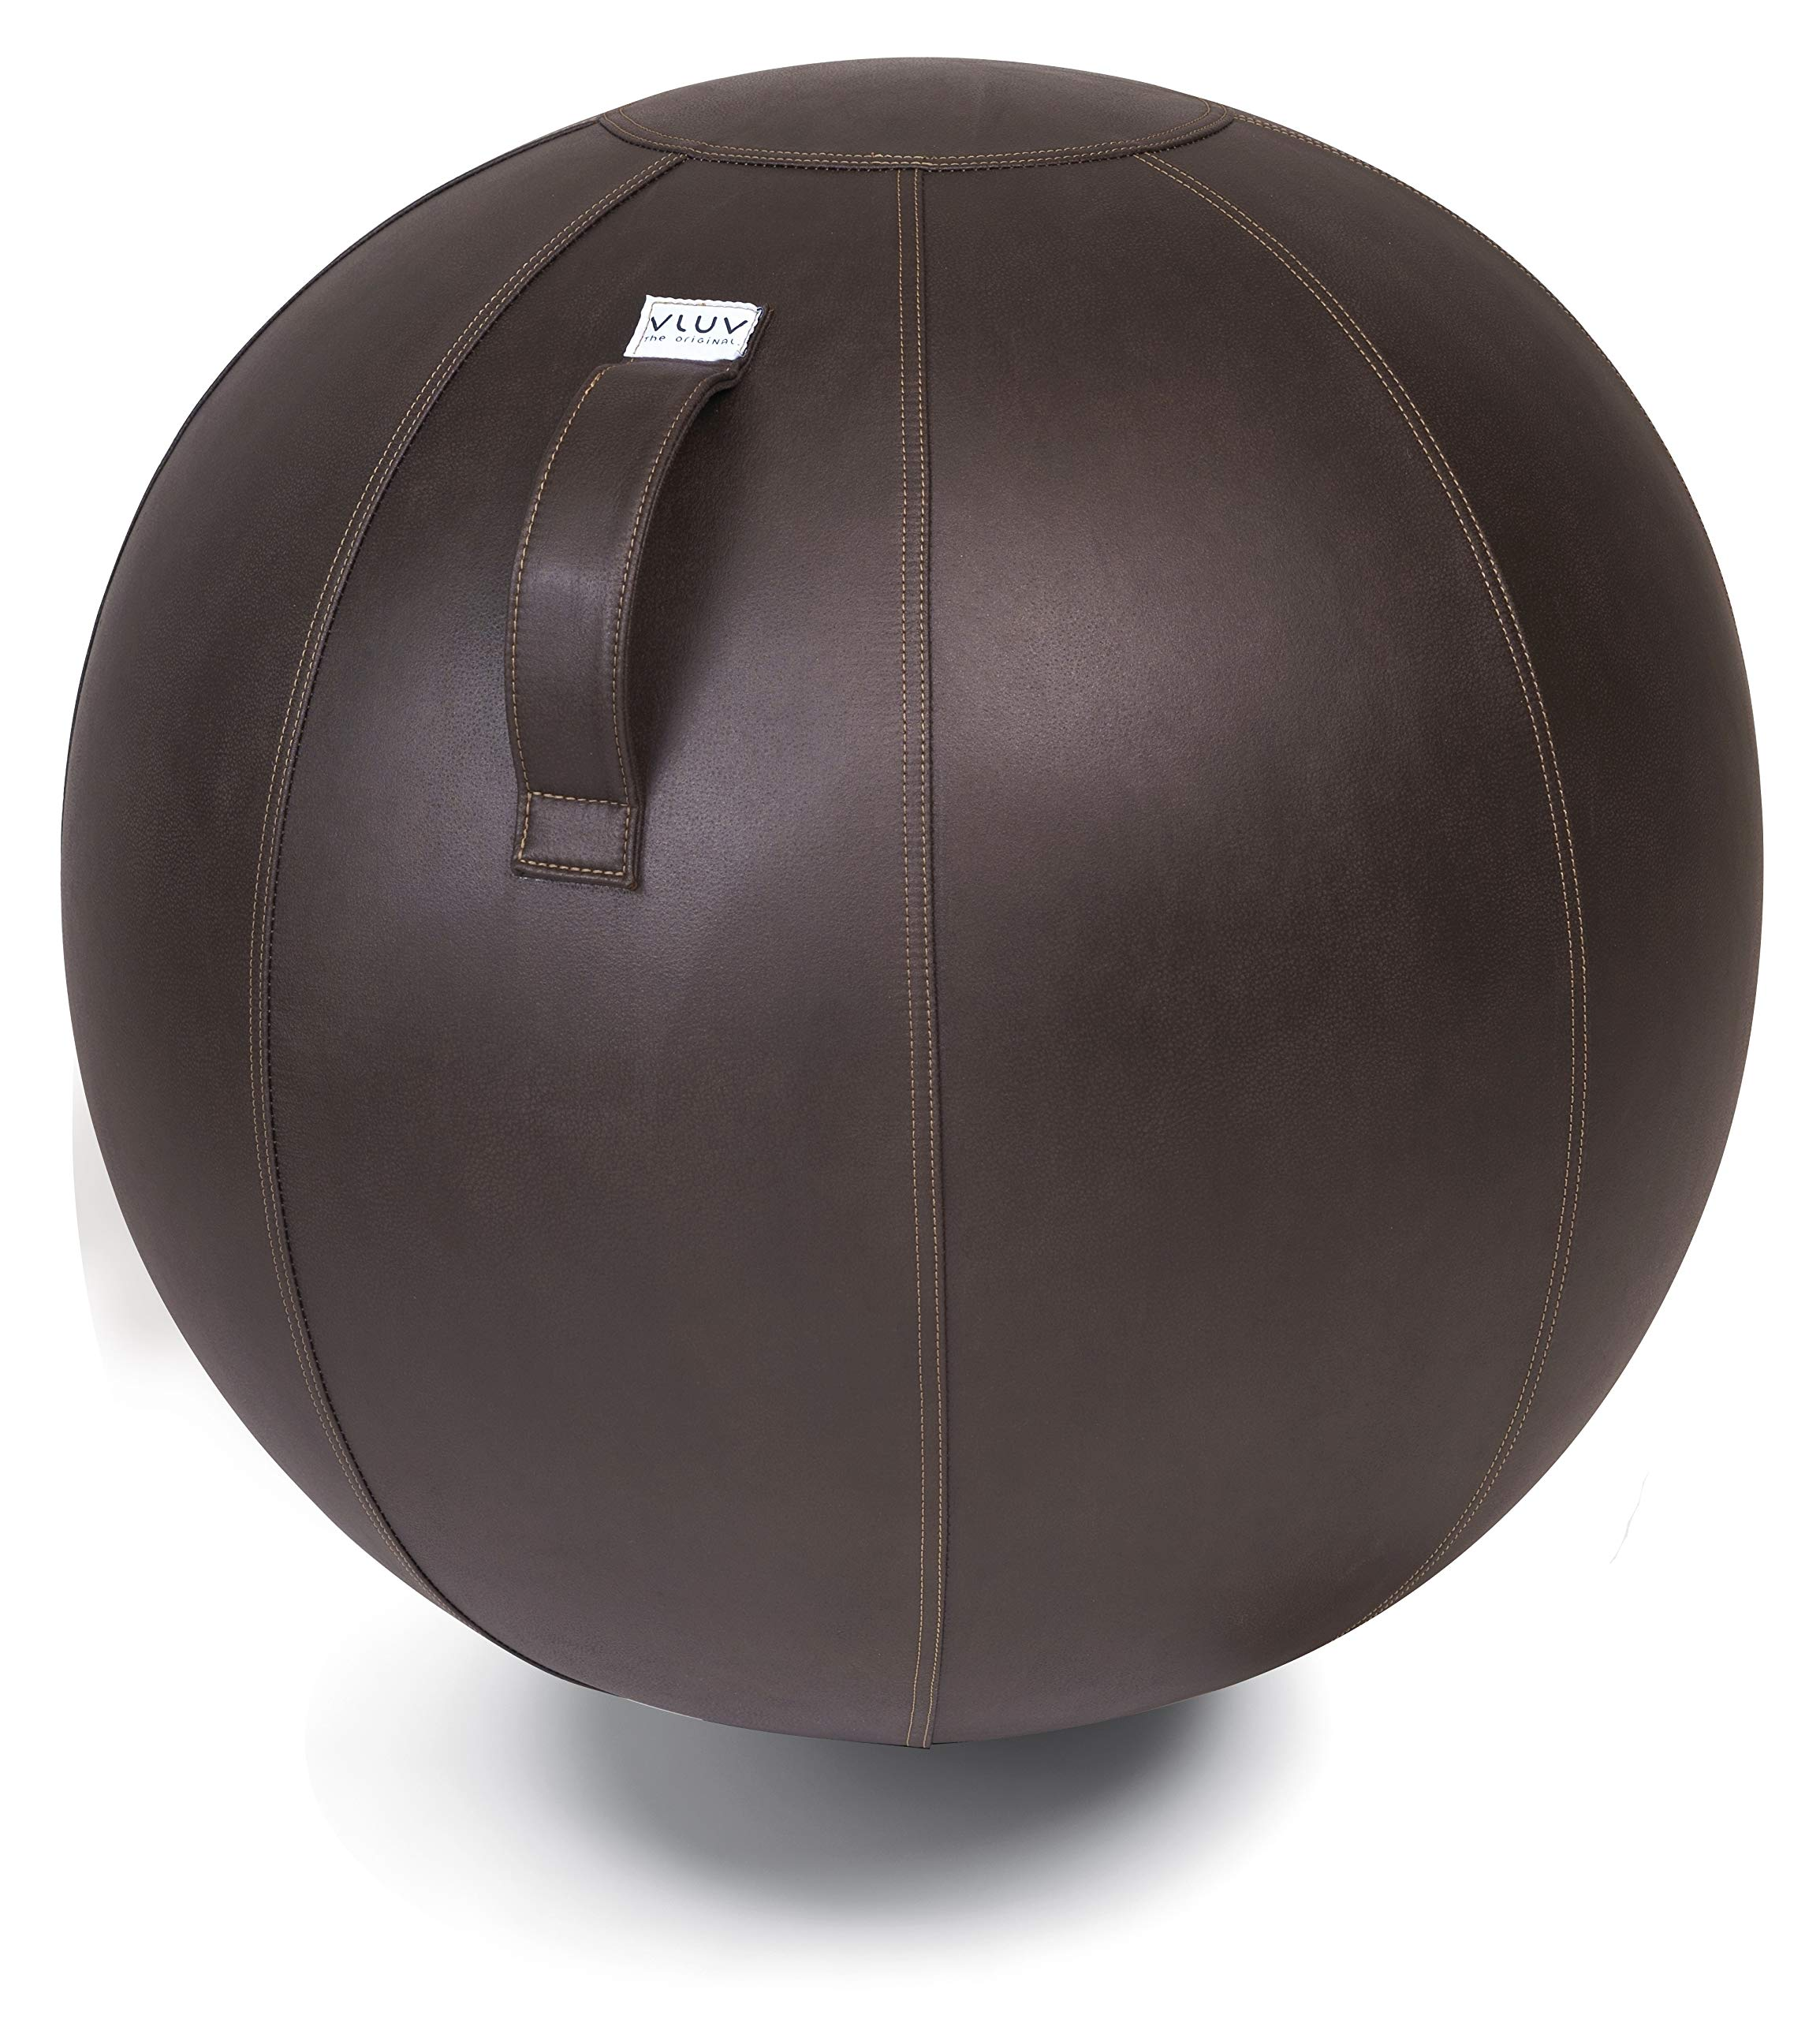 VLUV VEEL 29.5'' Premium Quality Self-Standing Sitting Ball with Handle - Home or Office Chair and Exercise Ball for Yoga, Back Stretching, and More - Made in Europe (Mocca, 25.6'')